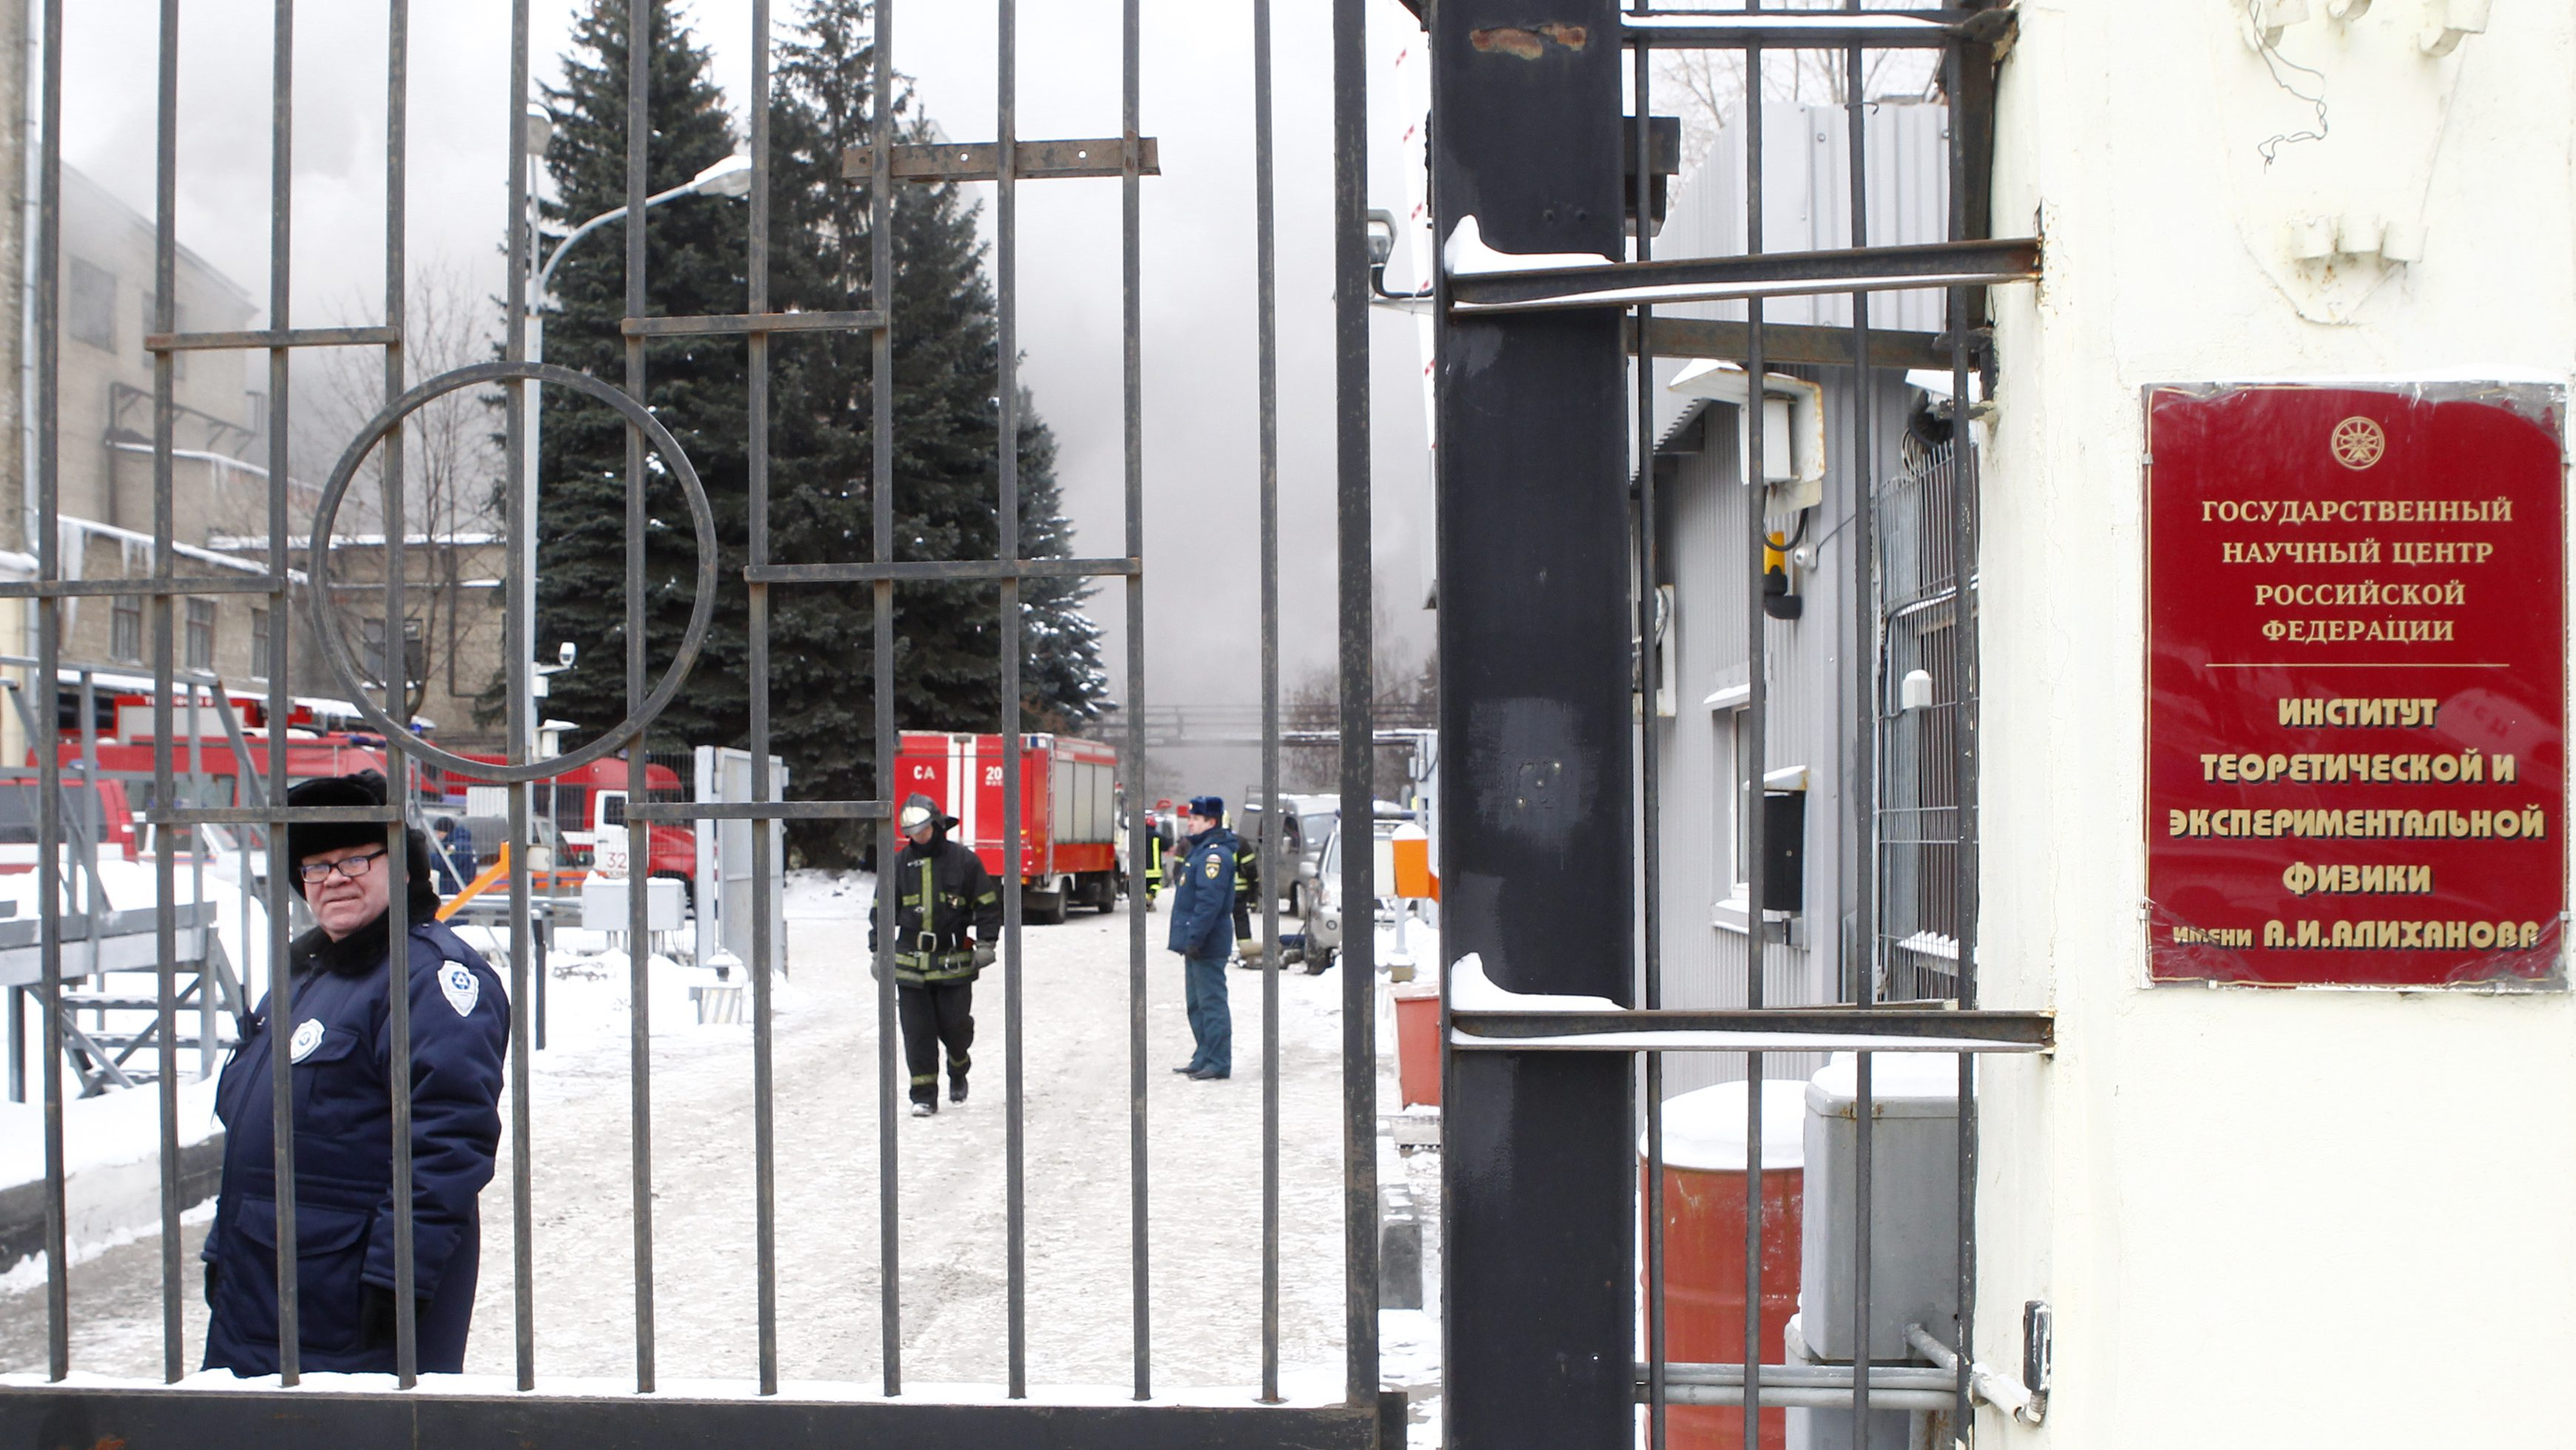 A gatekeeper looks from inside the Institute of Theoretical and Experimental Physics as heavy smoke is seen in the background in Moscow